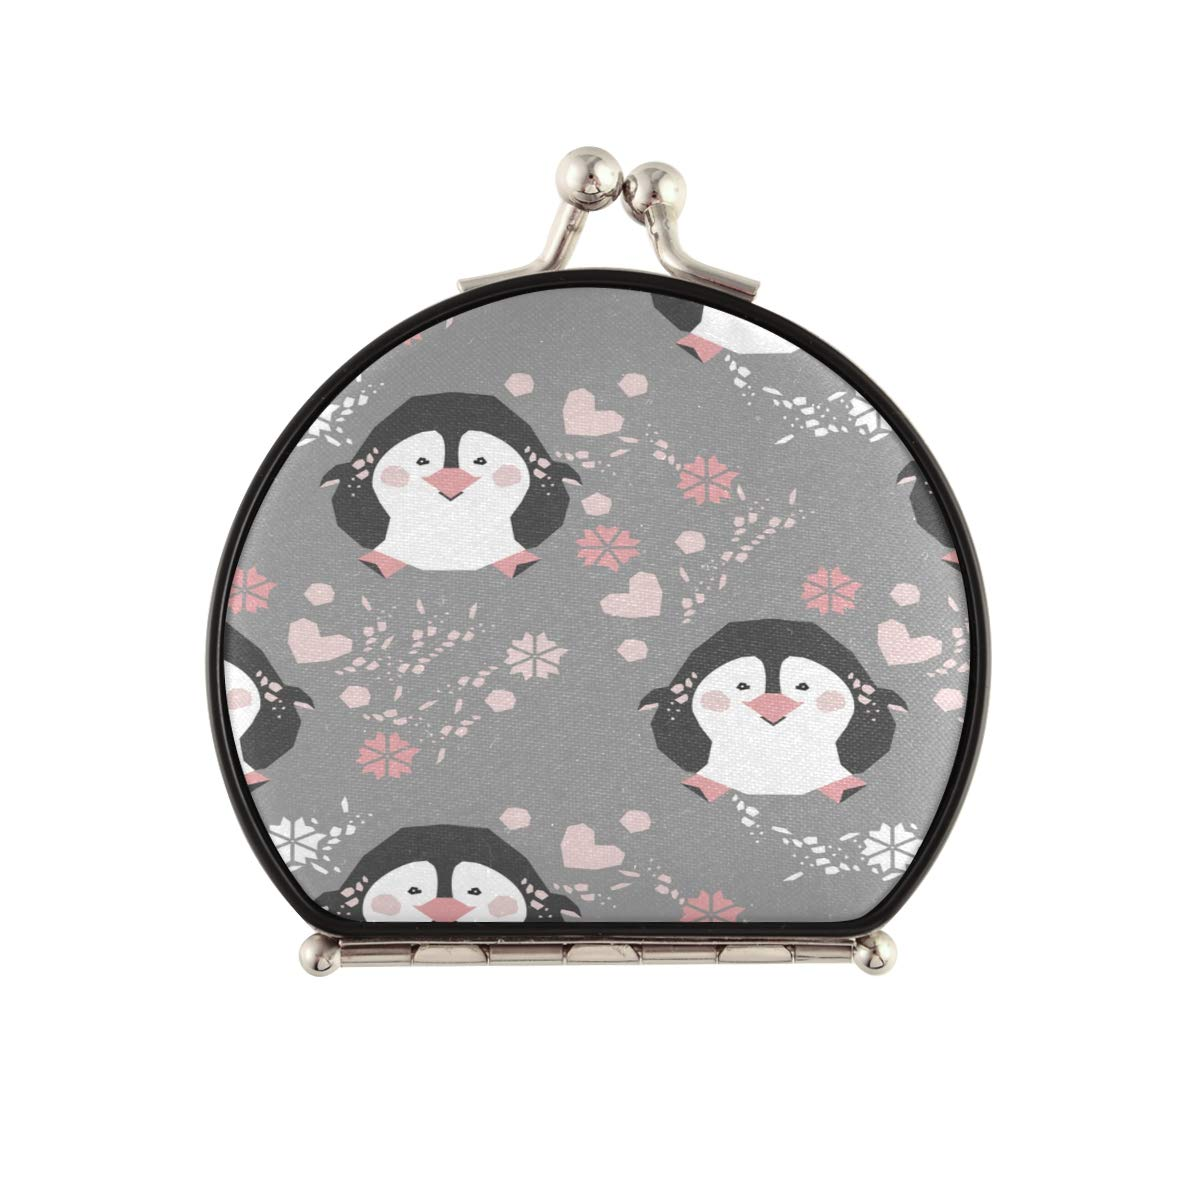 Magnifying Compact Cosmetic Mirror Surprise Colorado Springs Mall price Pattern Penguins Image Winter